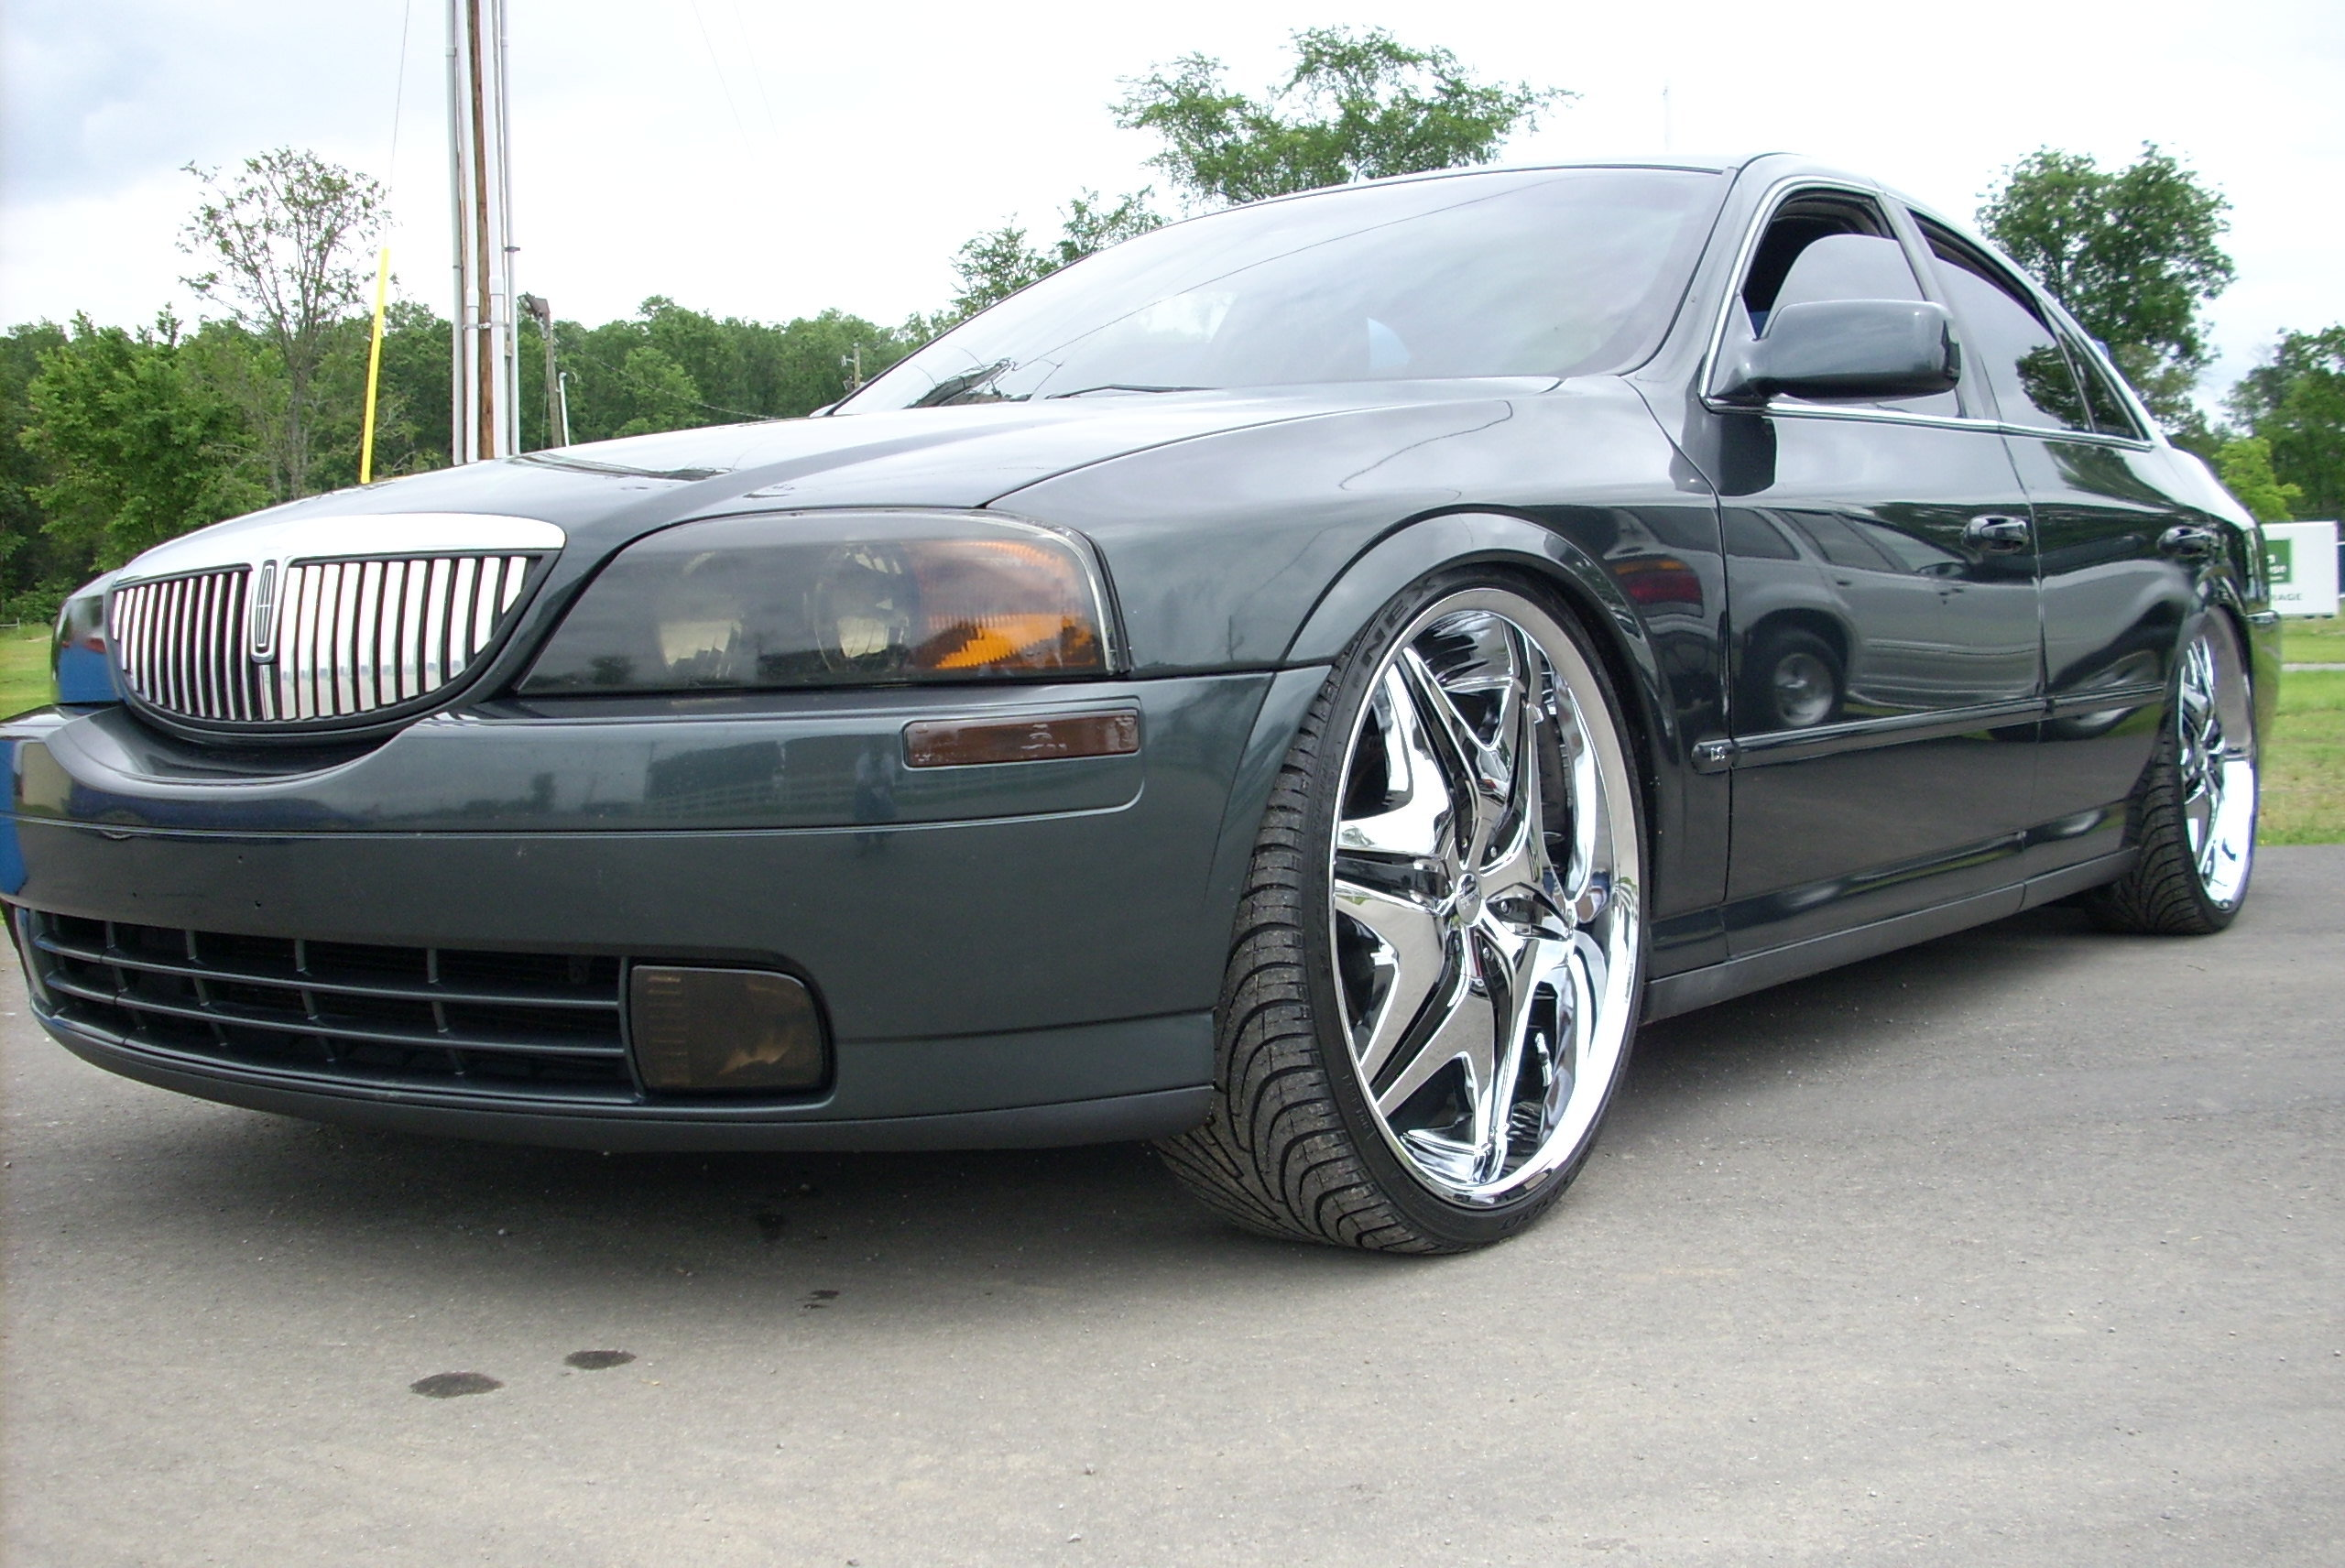 Hyundai Of Athens >> teamosc's 2001 Lincoln LS in athens, TN